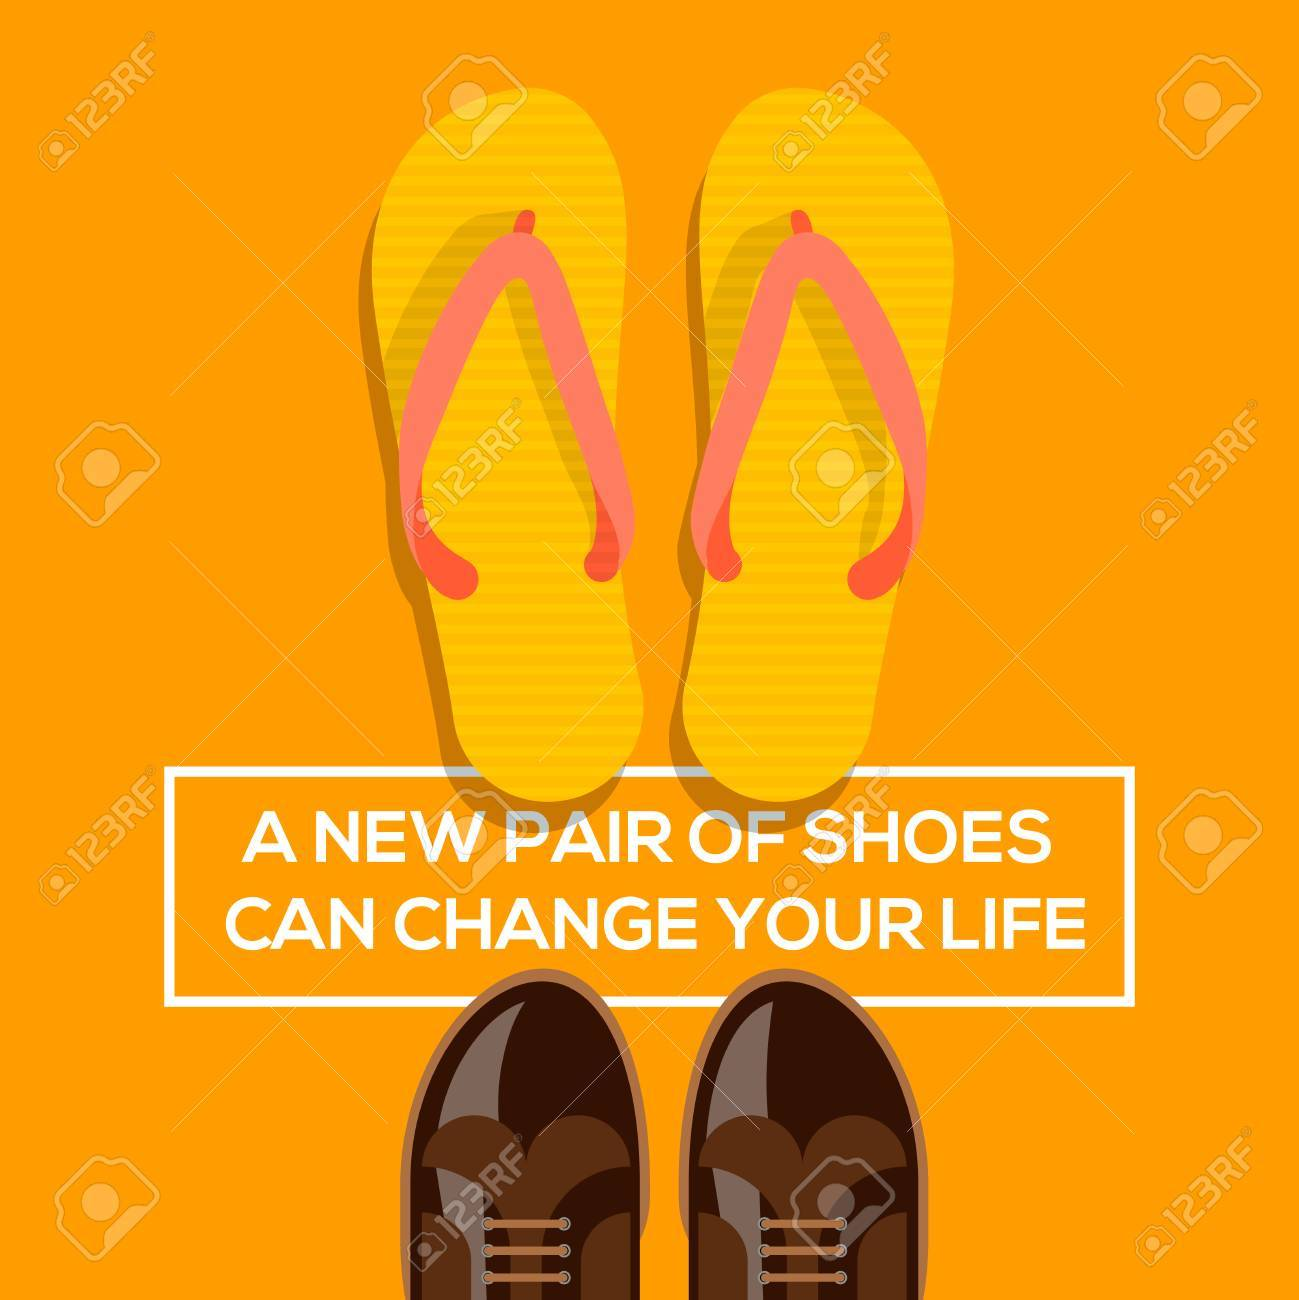 Concept of choices, a new pair of shoes can change your life. Vector illustration. Stock Vector - 28872966